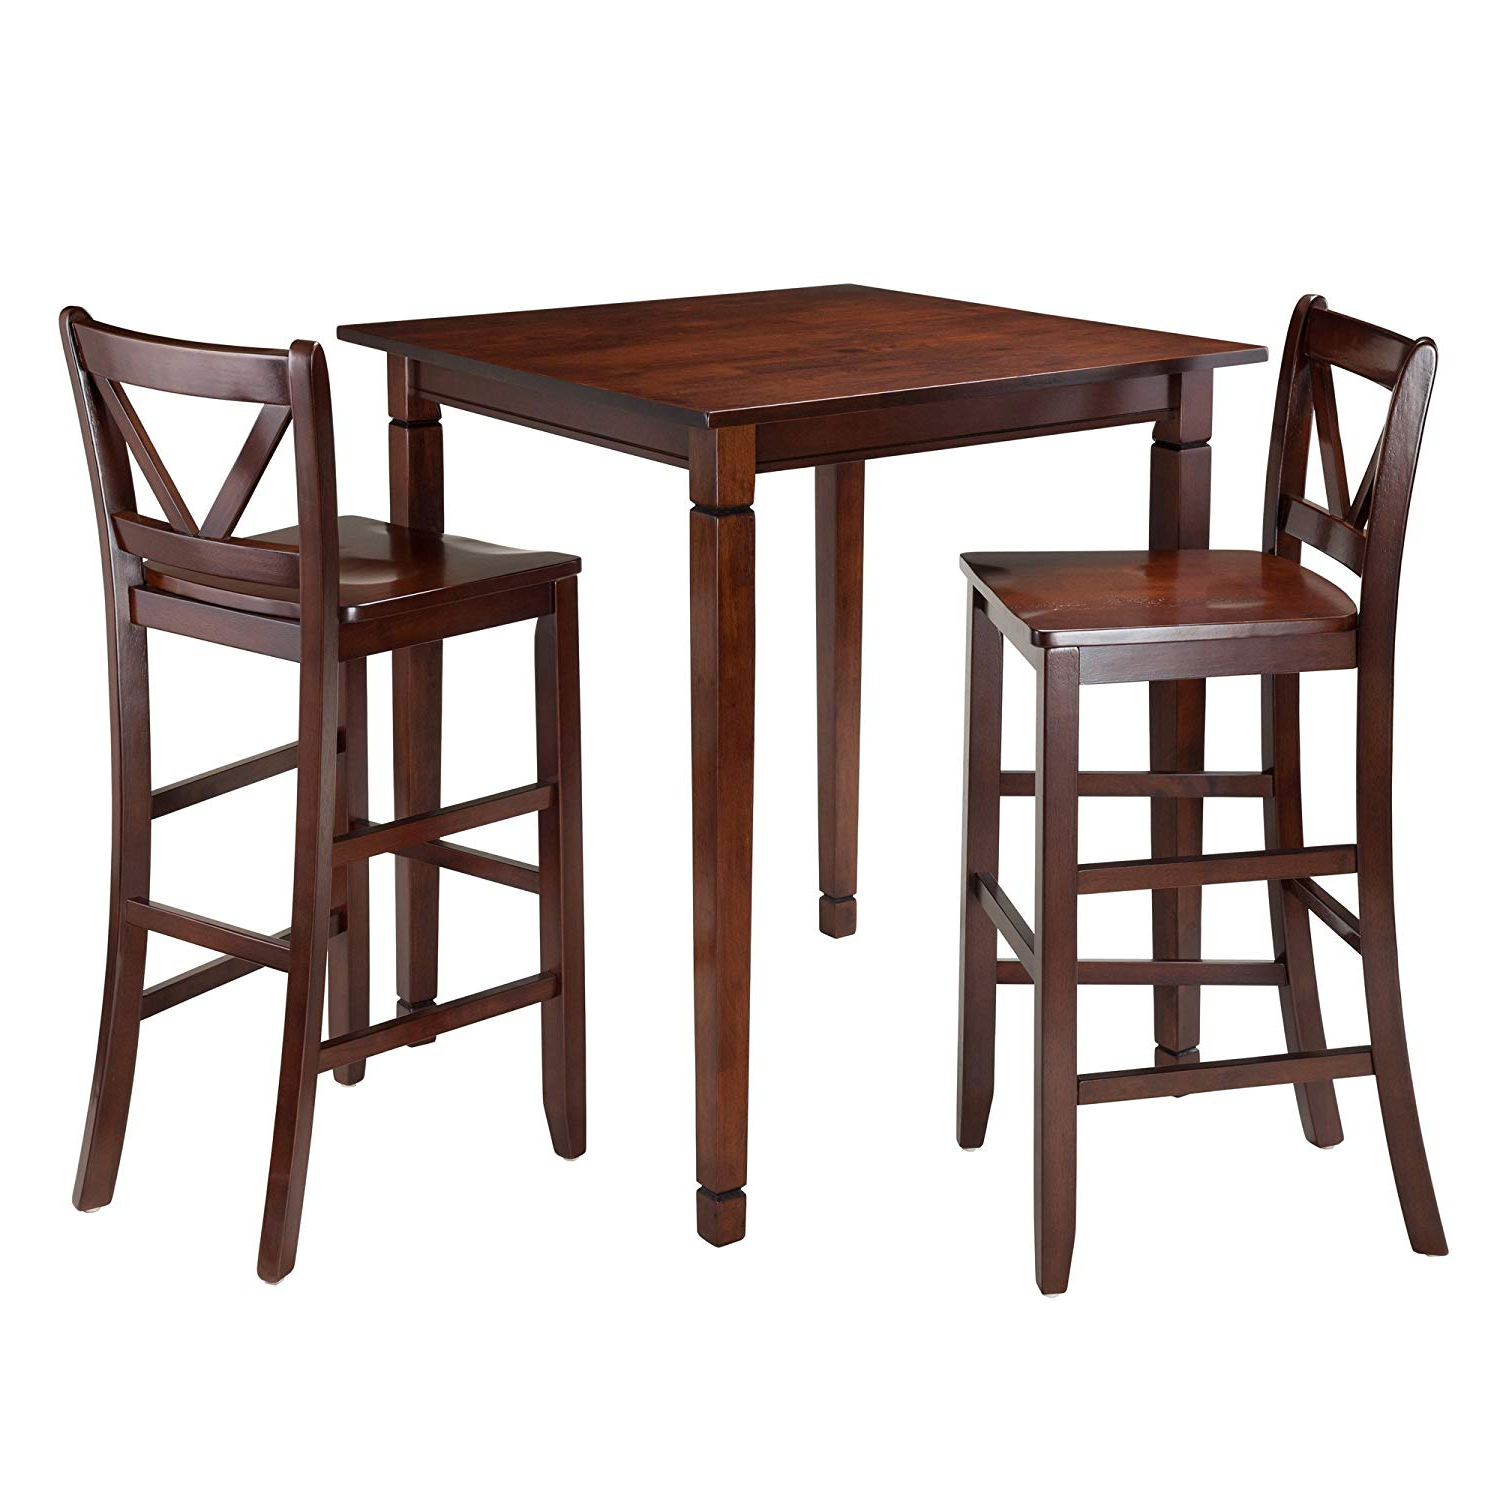 Winsome 3 Piece Kingsgate Dining Table With 2 Bar V Back Chairs, Brown Pertaining To Best And Newest Winsome 3 Piece Counter Height Dining Sets (View 2 of 20)